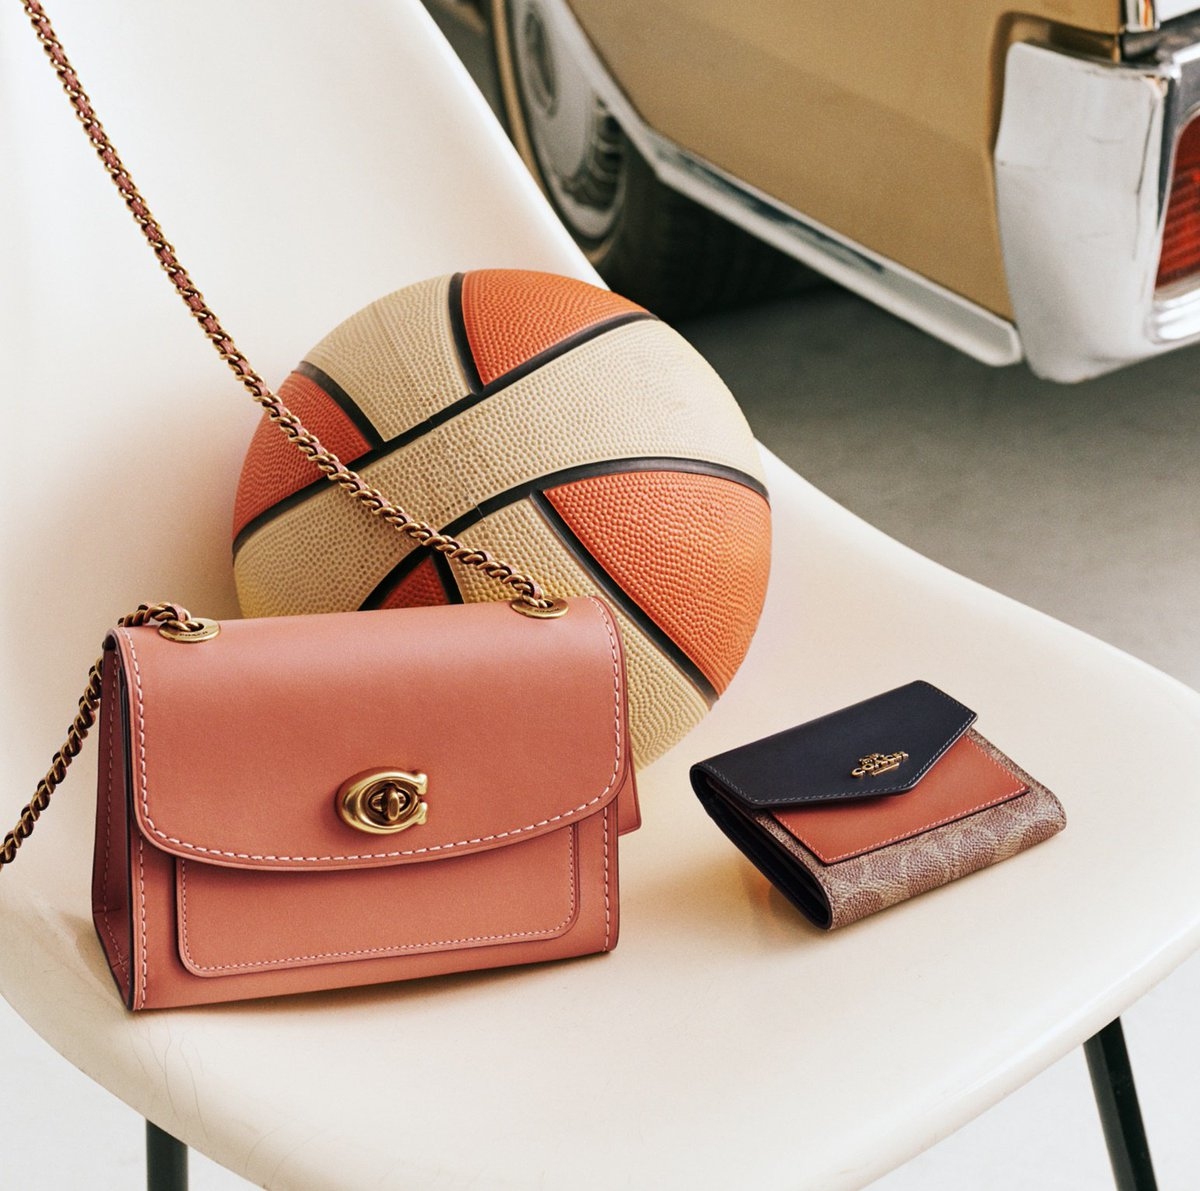 Alley-oop! The Parker 18 Shoulder Bag and a colorblock wallet make a winning team for summer color. http://on.coach.com/SignatureStyle #CoachNY